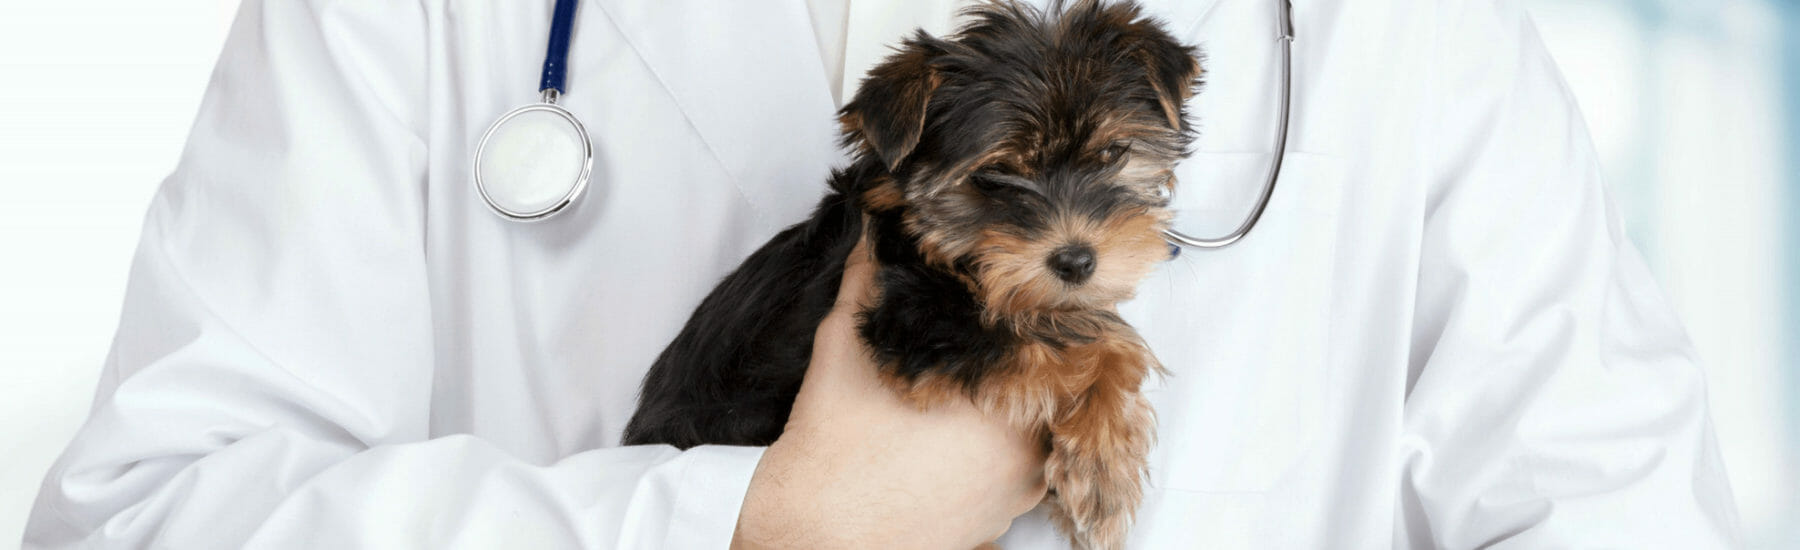 Small black dog being held by veterinarian